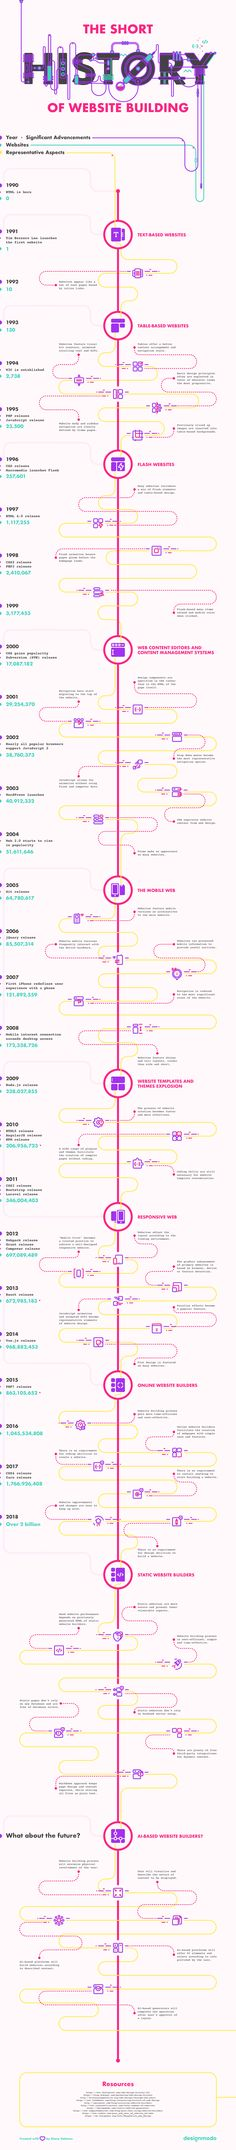 The Short History of Website Building [Infographic] NOT agreeing with the latest invention Static Web, is actually towards Intrinsic Web design by Jen Simmons. Design Web, Graphic Design, Timeline Design, Building A Website, Study Notes, Web Design Inspiration, Web Development, Helpful Hints, Social Media